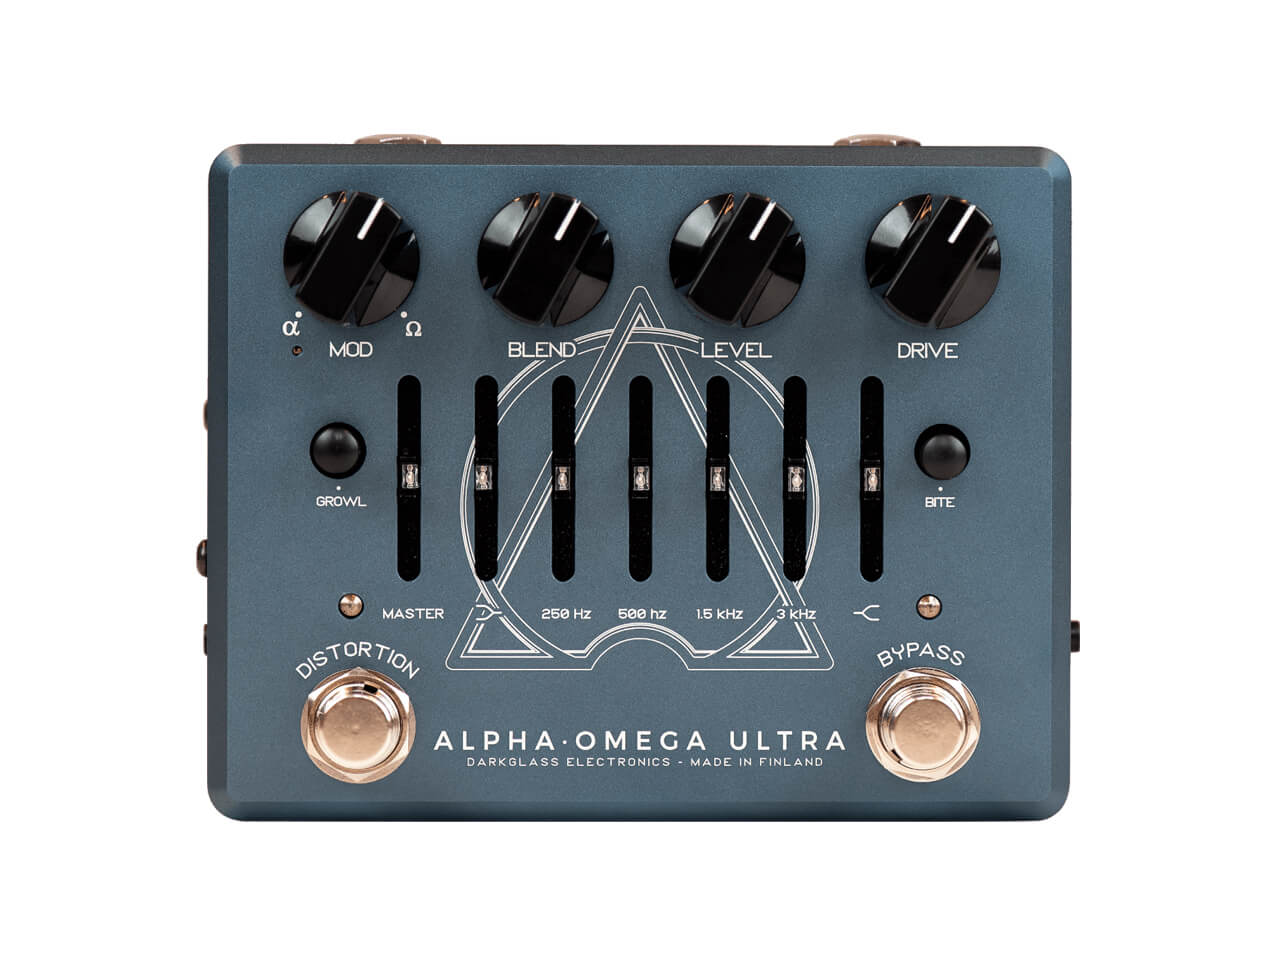 Darkglass Electronics(ダークグラスエレクトロニクス) ALPHA · OMEGA ULTRA V2 with AUX-IN (ディストーション/プリアンプ)